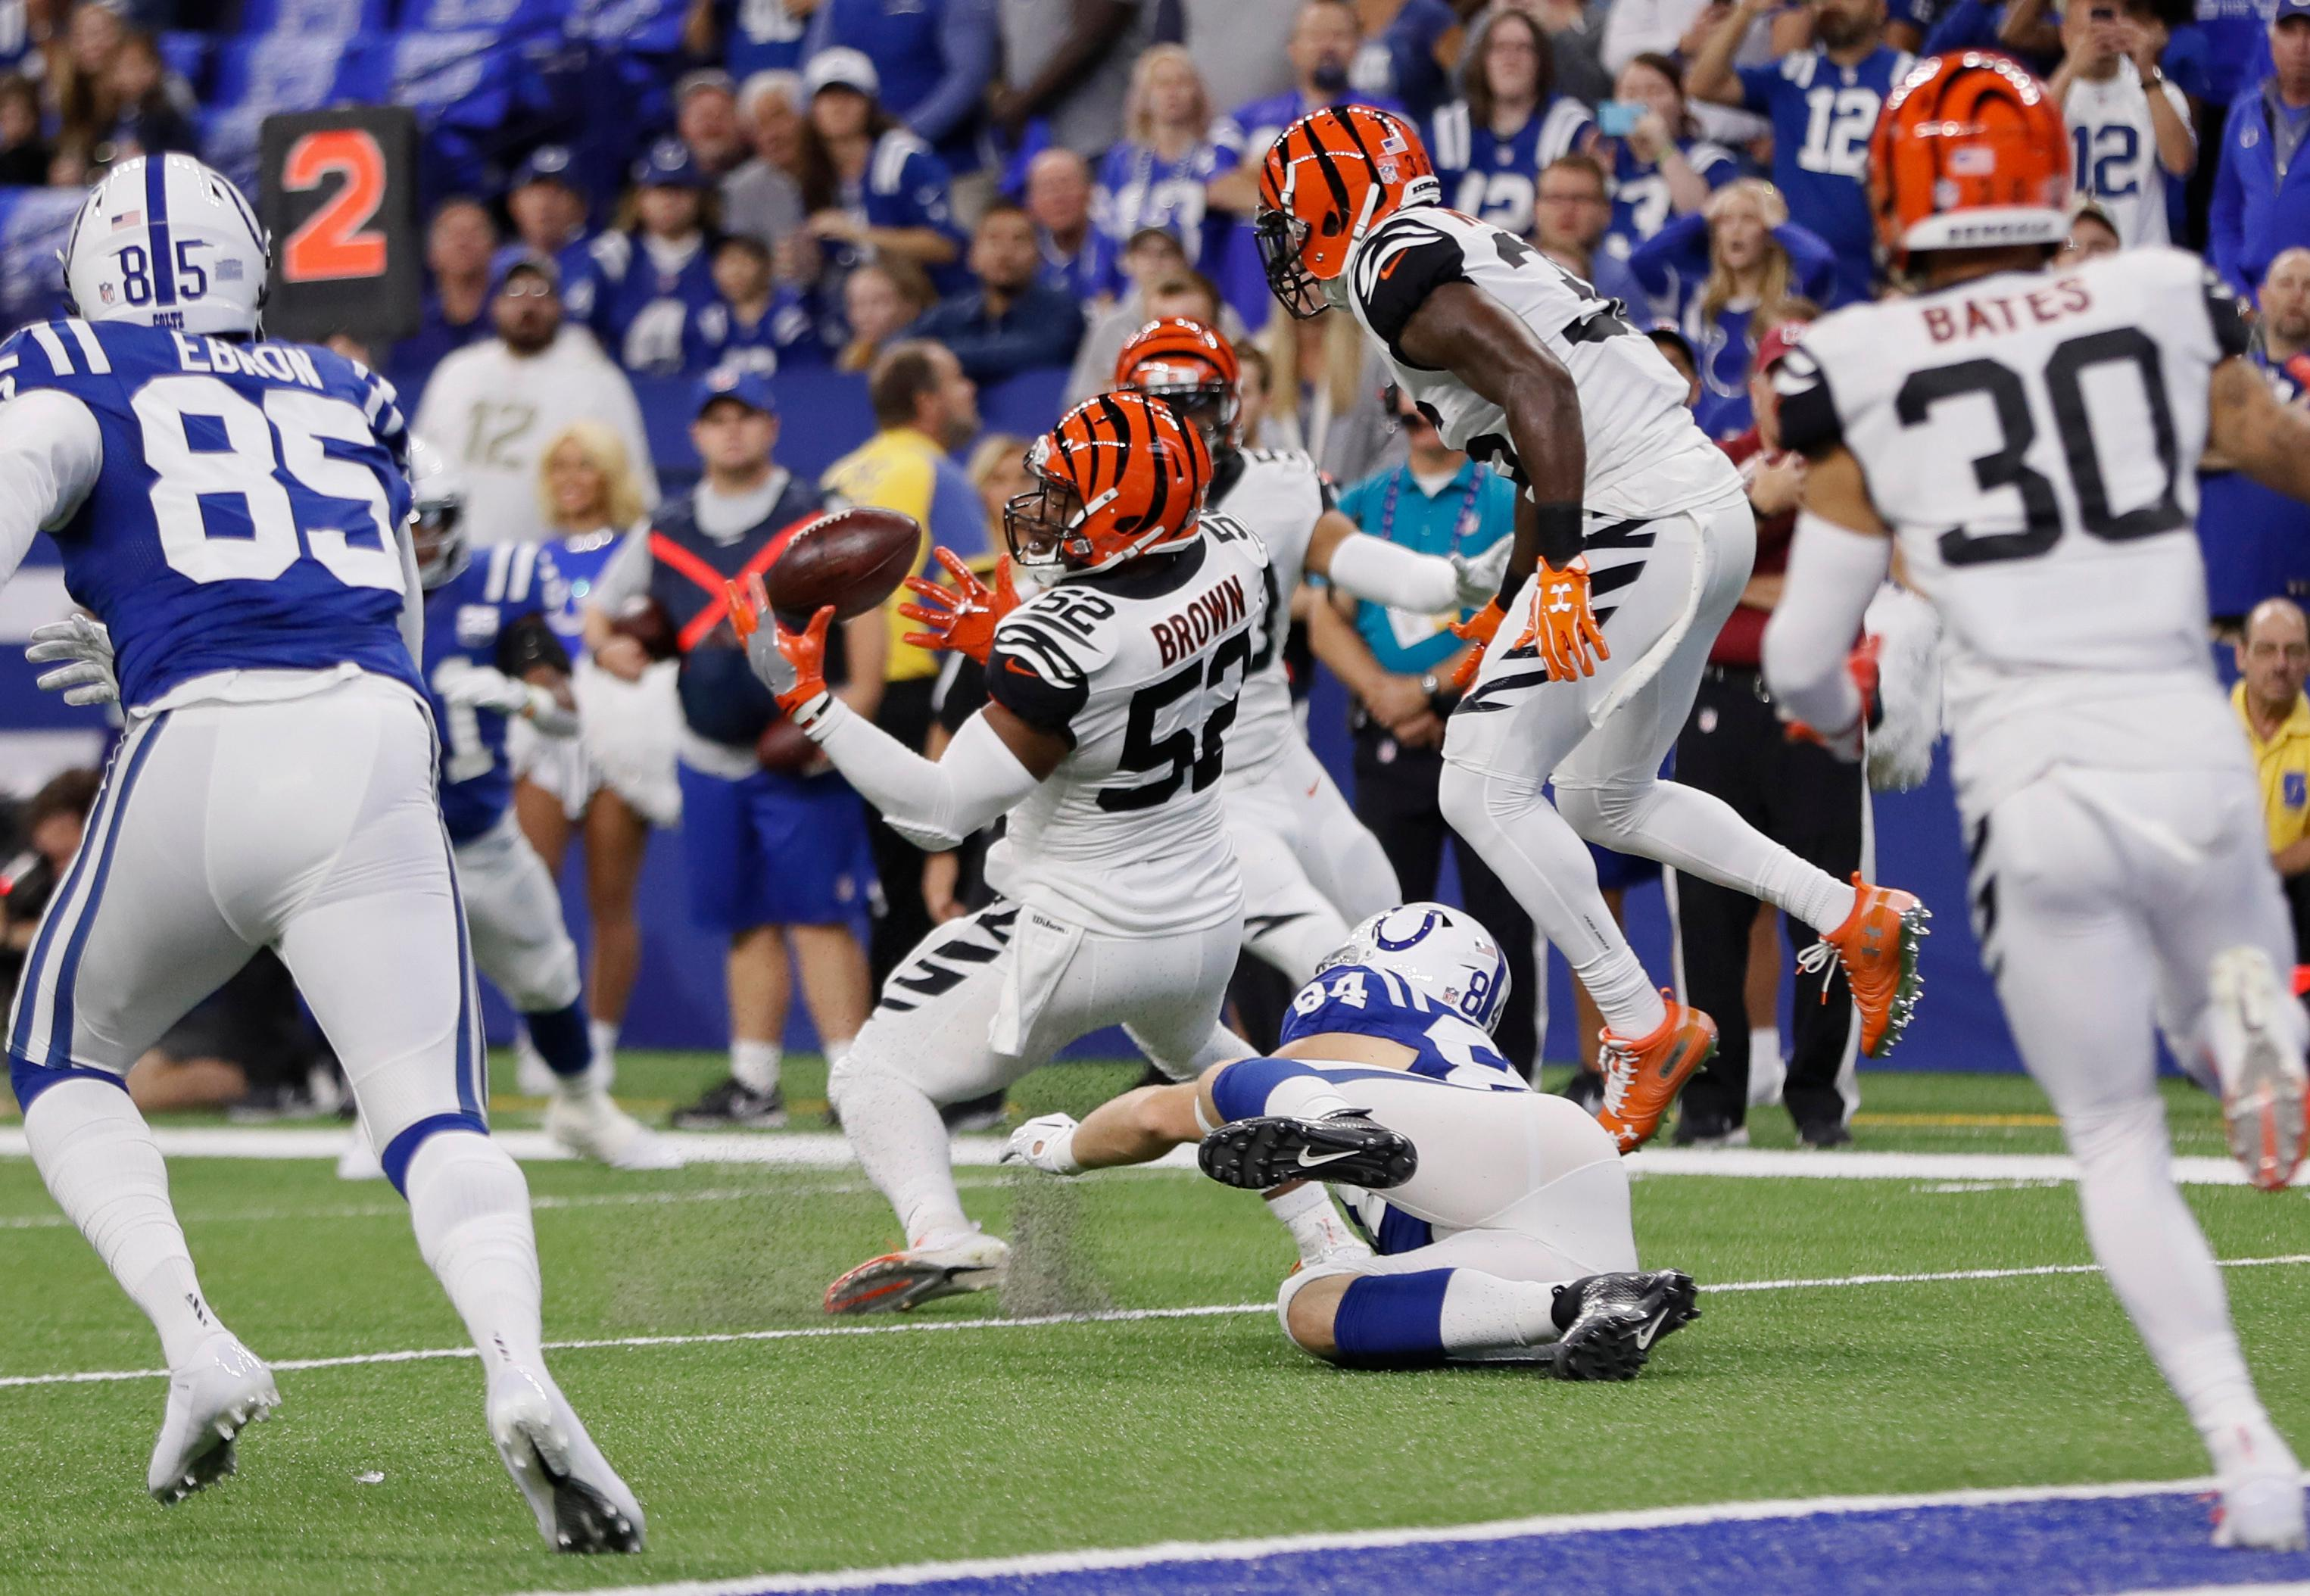 Cincinnati Bengals linebacker Preston Brown (52) intercepts a pass by Indianapolis Colts quarterback Andrew Luck (12) during the first half of an NFL football game in Indianapolis, Sunday, Sept. 9, 2018. (AP Photo/John Minchillo)